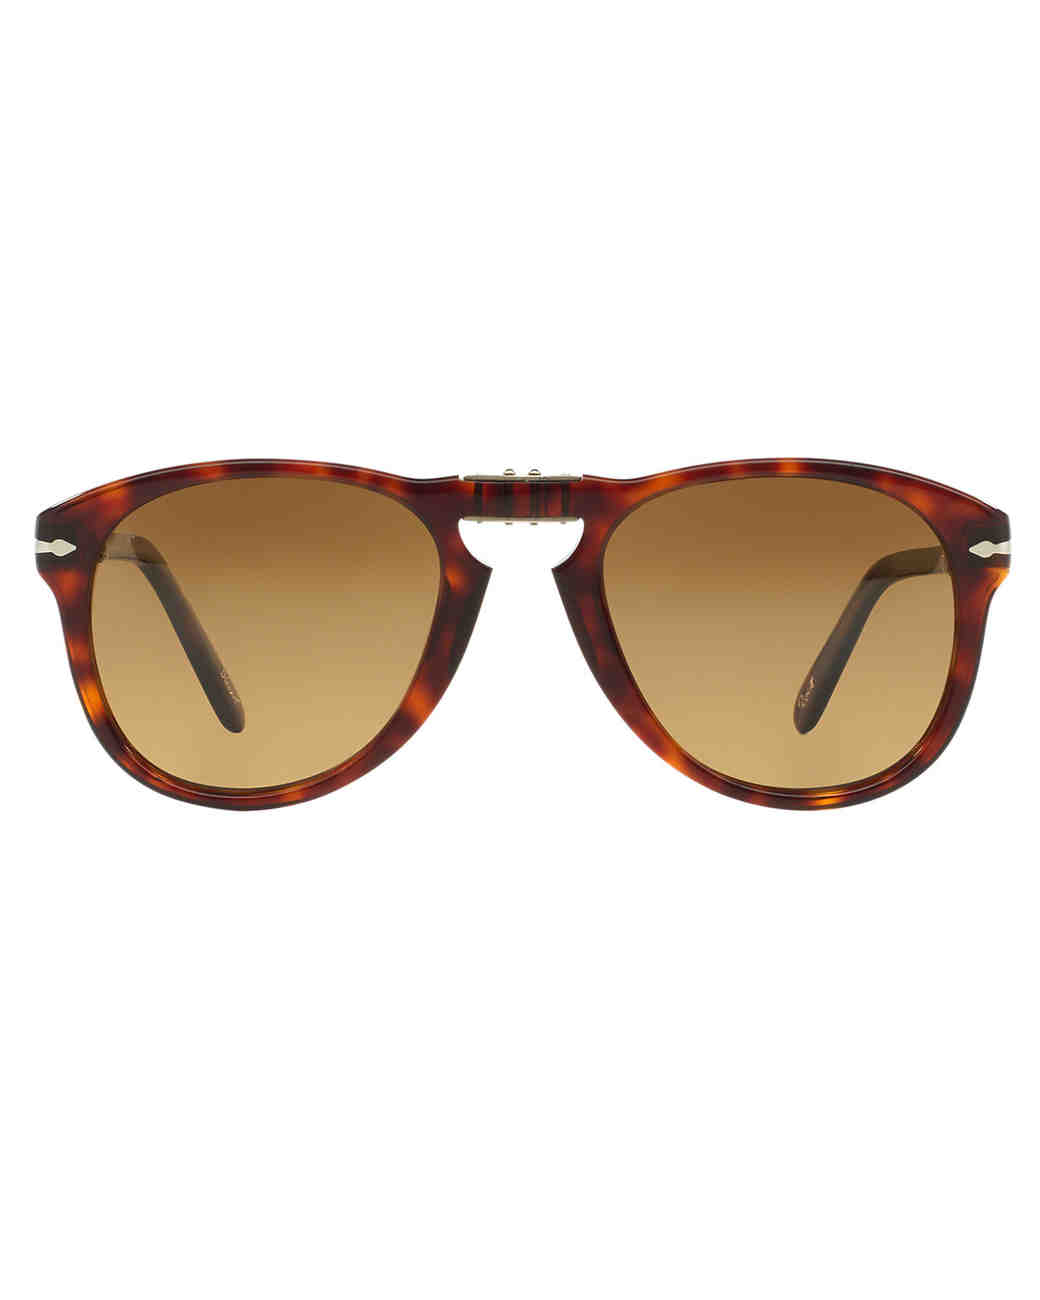 fathers-gift-guide-accessories-sunglasses-persol-0515.jpg